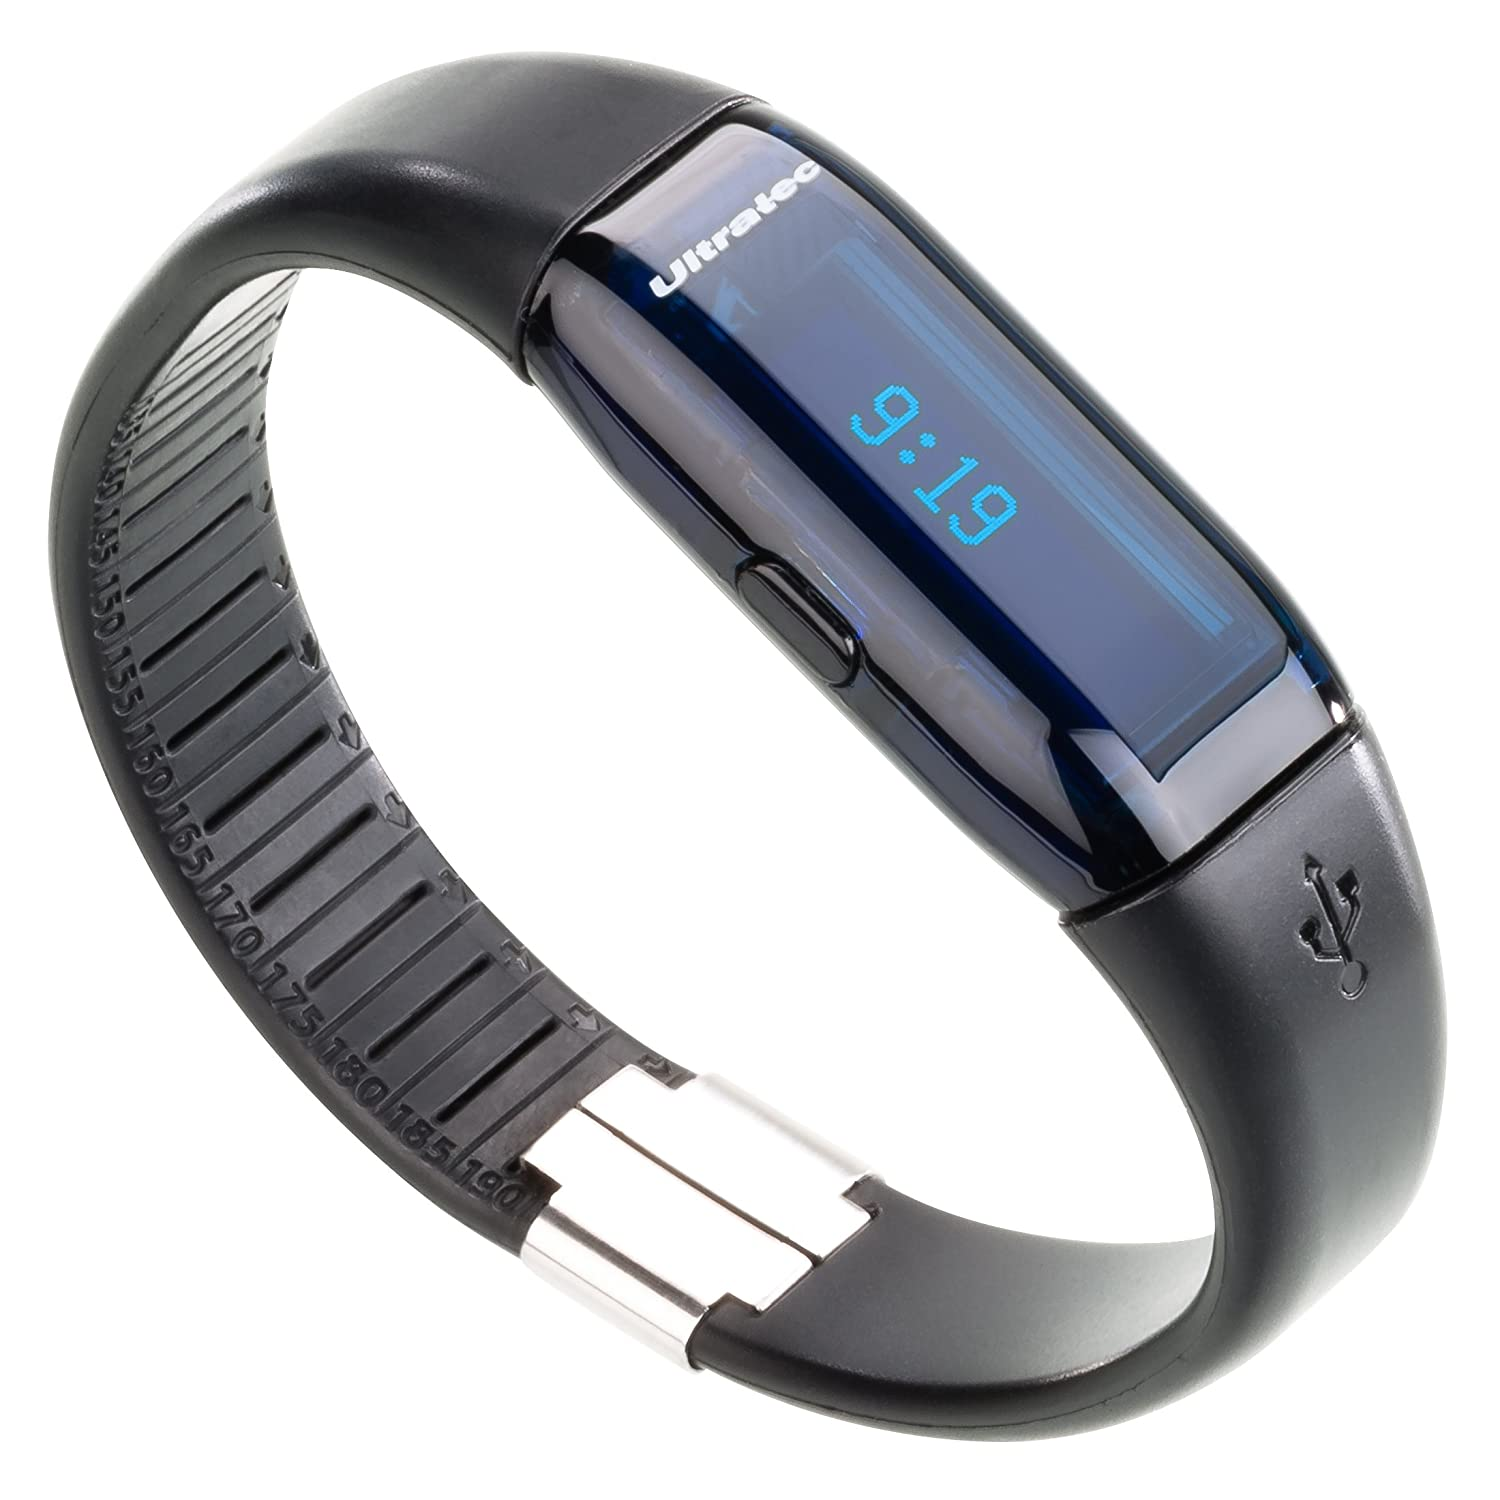 Ultrasport by Ultratec Active Tracker with Smart Pedometer, Fitness Tracker and App B00PFP0TCE